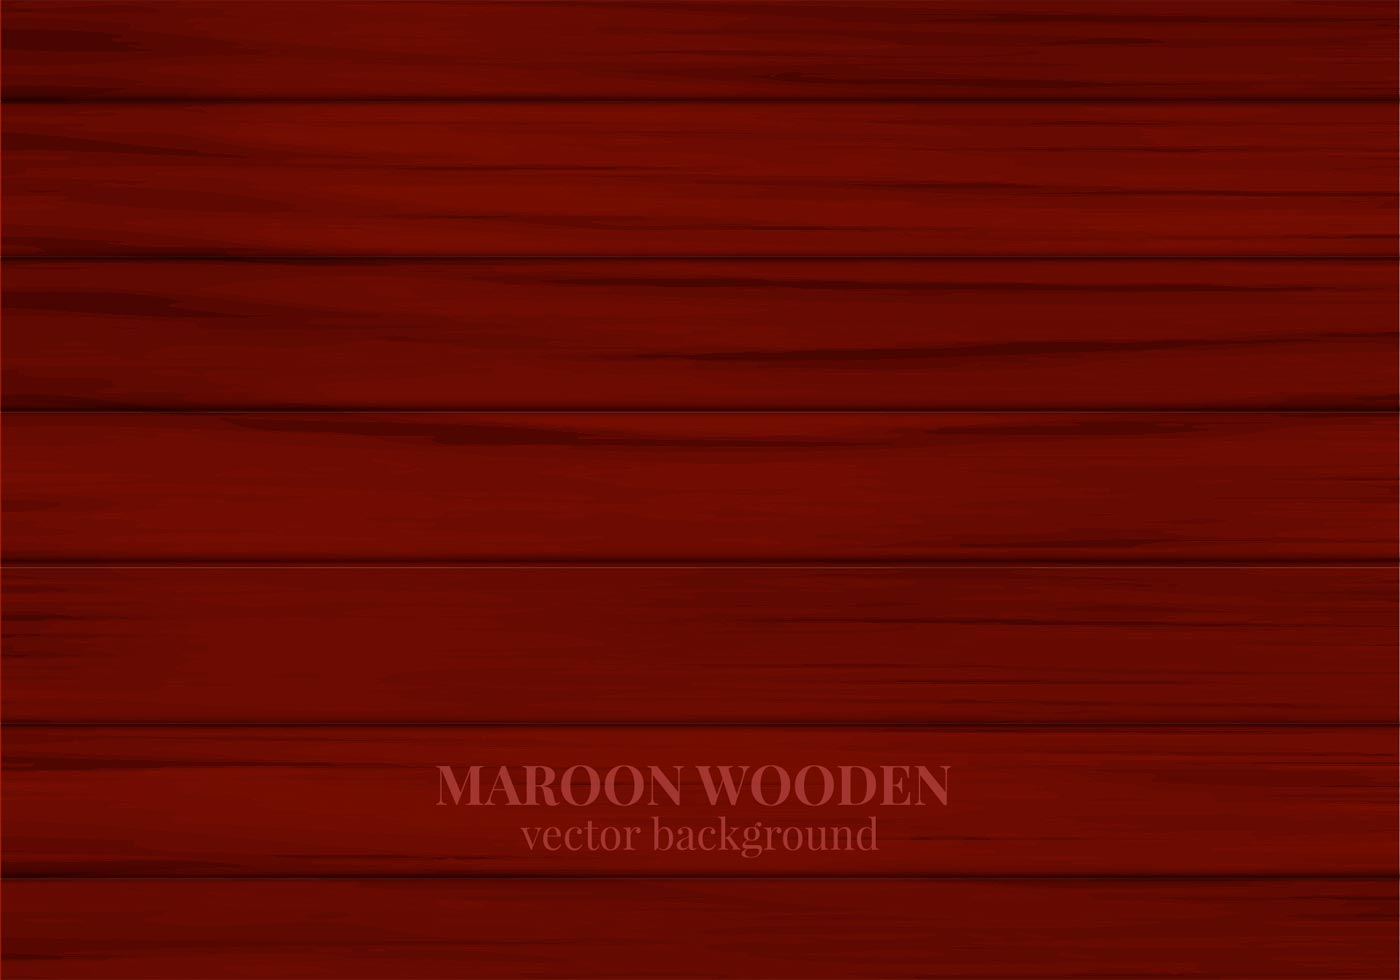 Free Maroon Wooden Background Download Free Vector Art